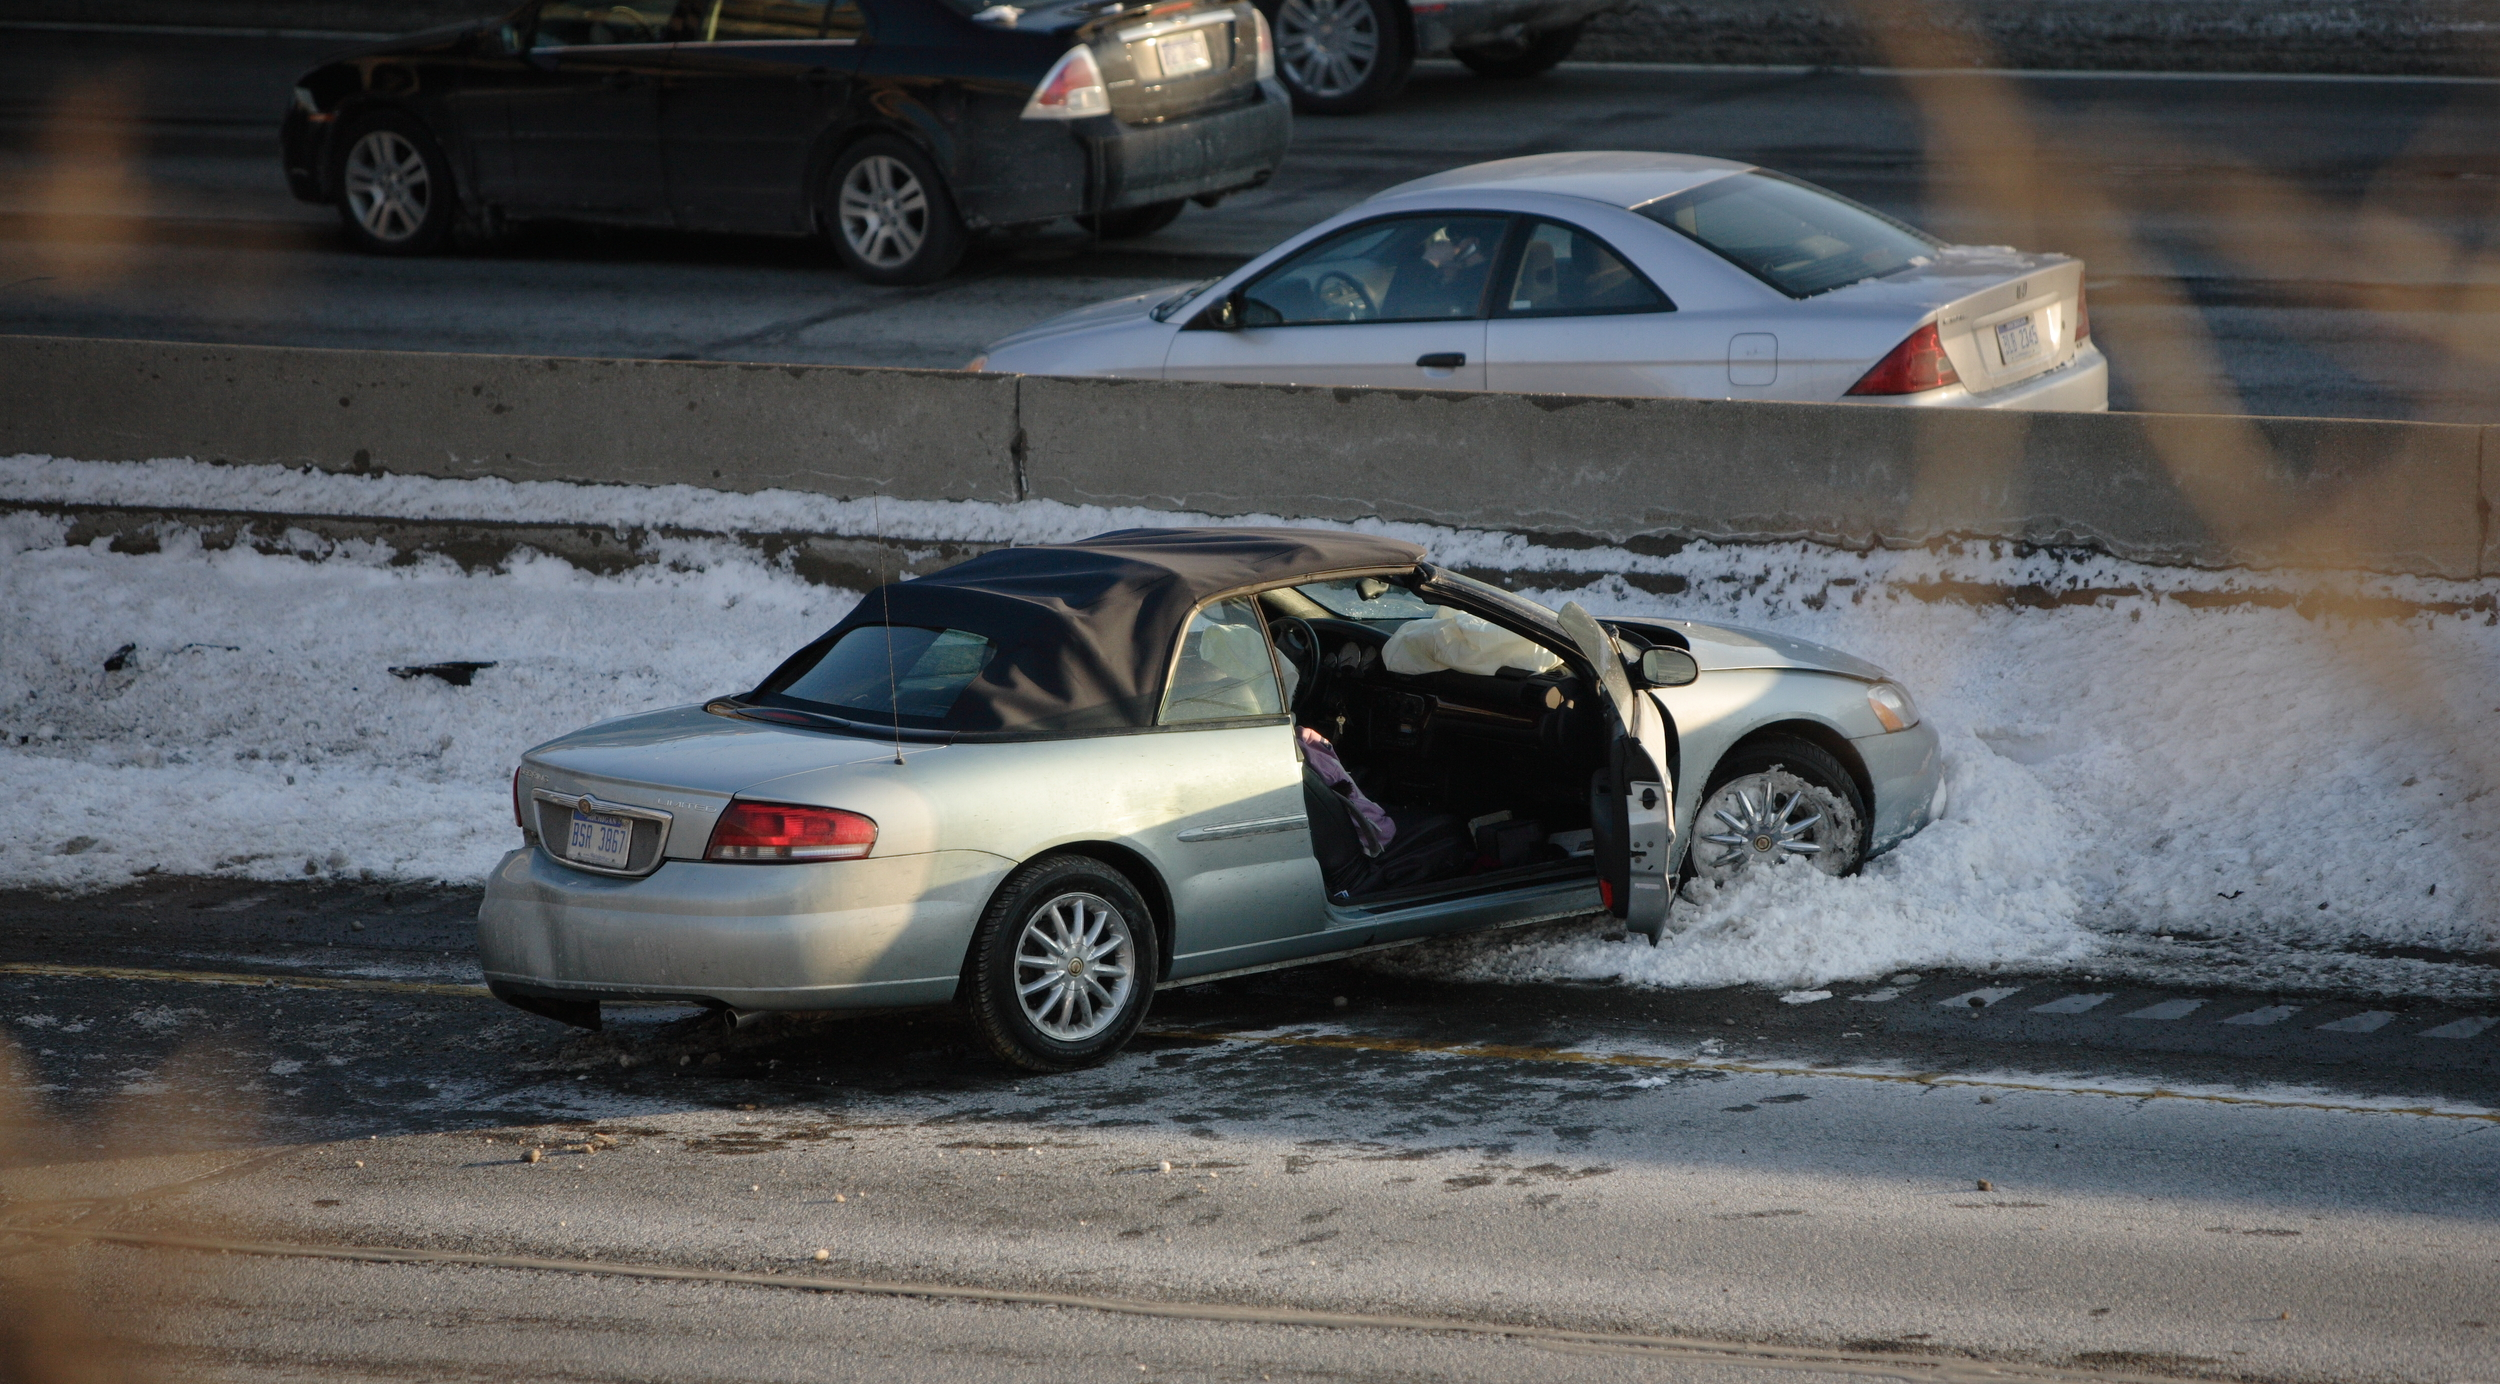 Taylor Car Accident Lawyer